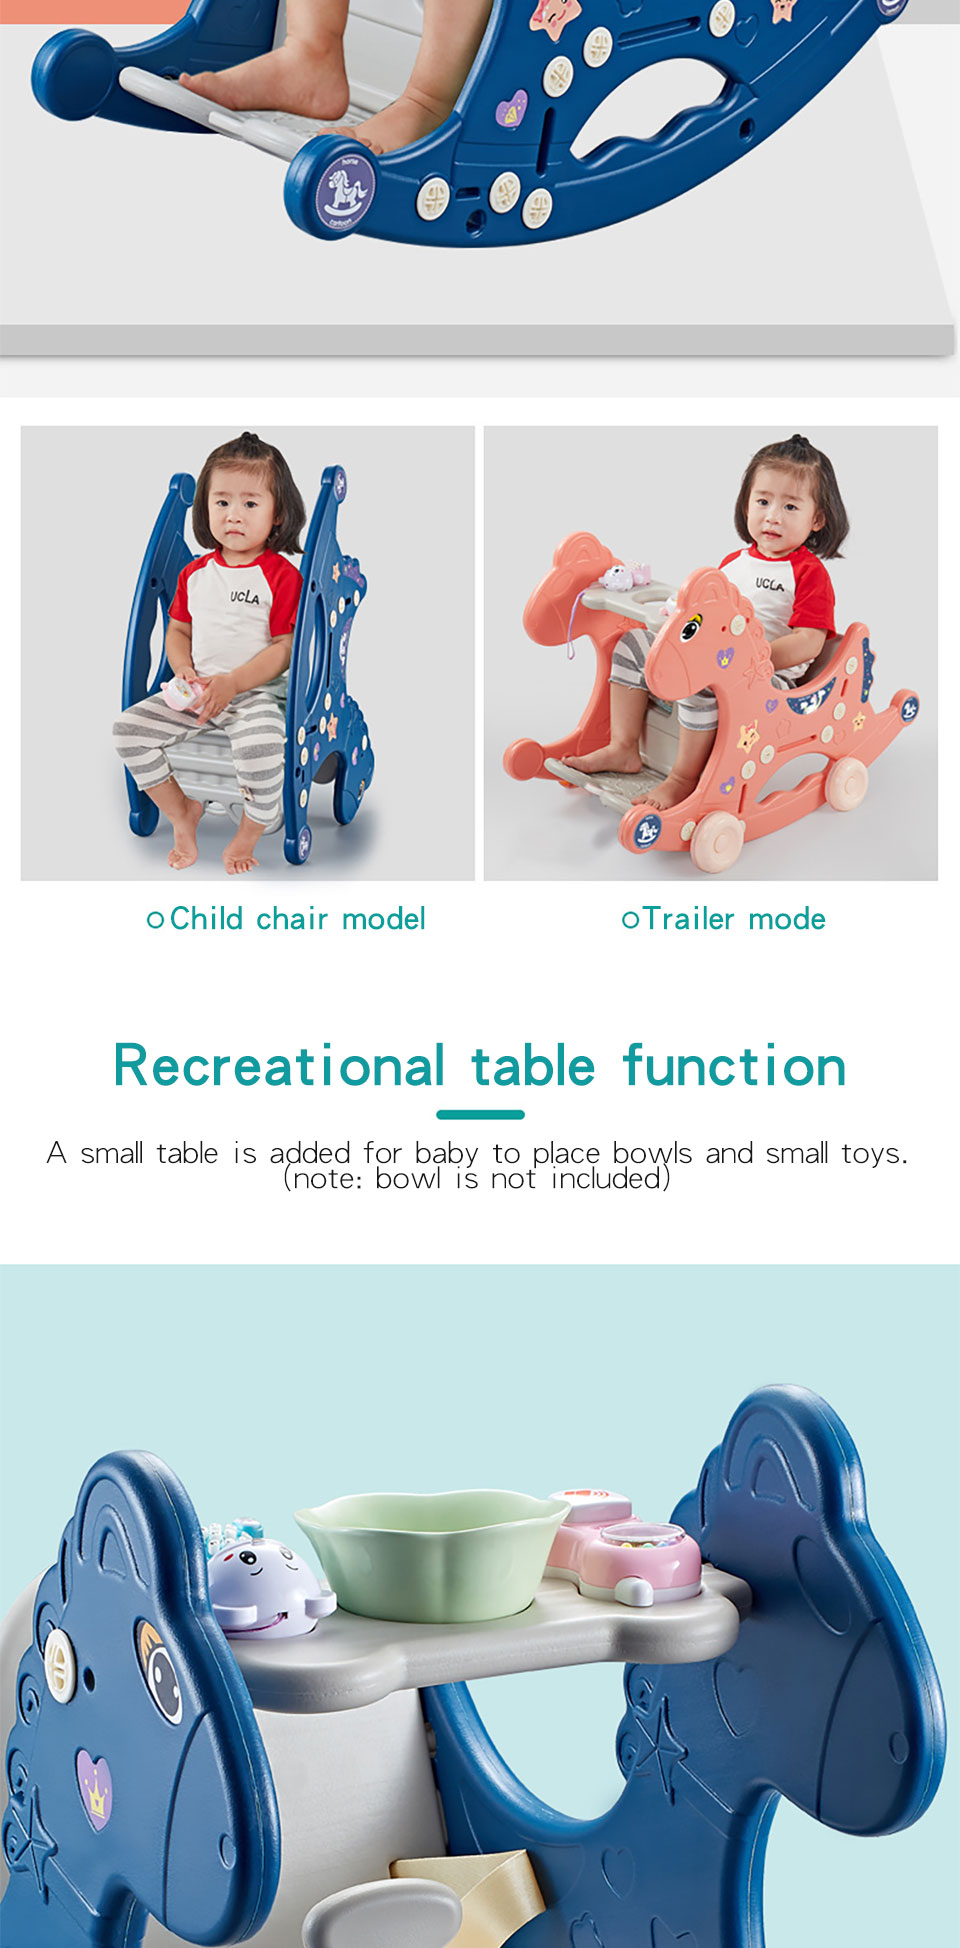 Hb3be0b6cb7874eeab0e3c868e2c431a1b Ruizhi Children Three-In-One Plastic Rocking Chair Baby Indoor Multi-Function Rocking Horse With Music Kids Sport Toys RZ1197